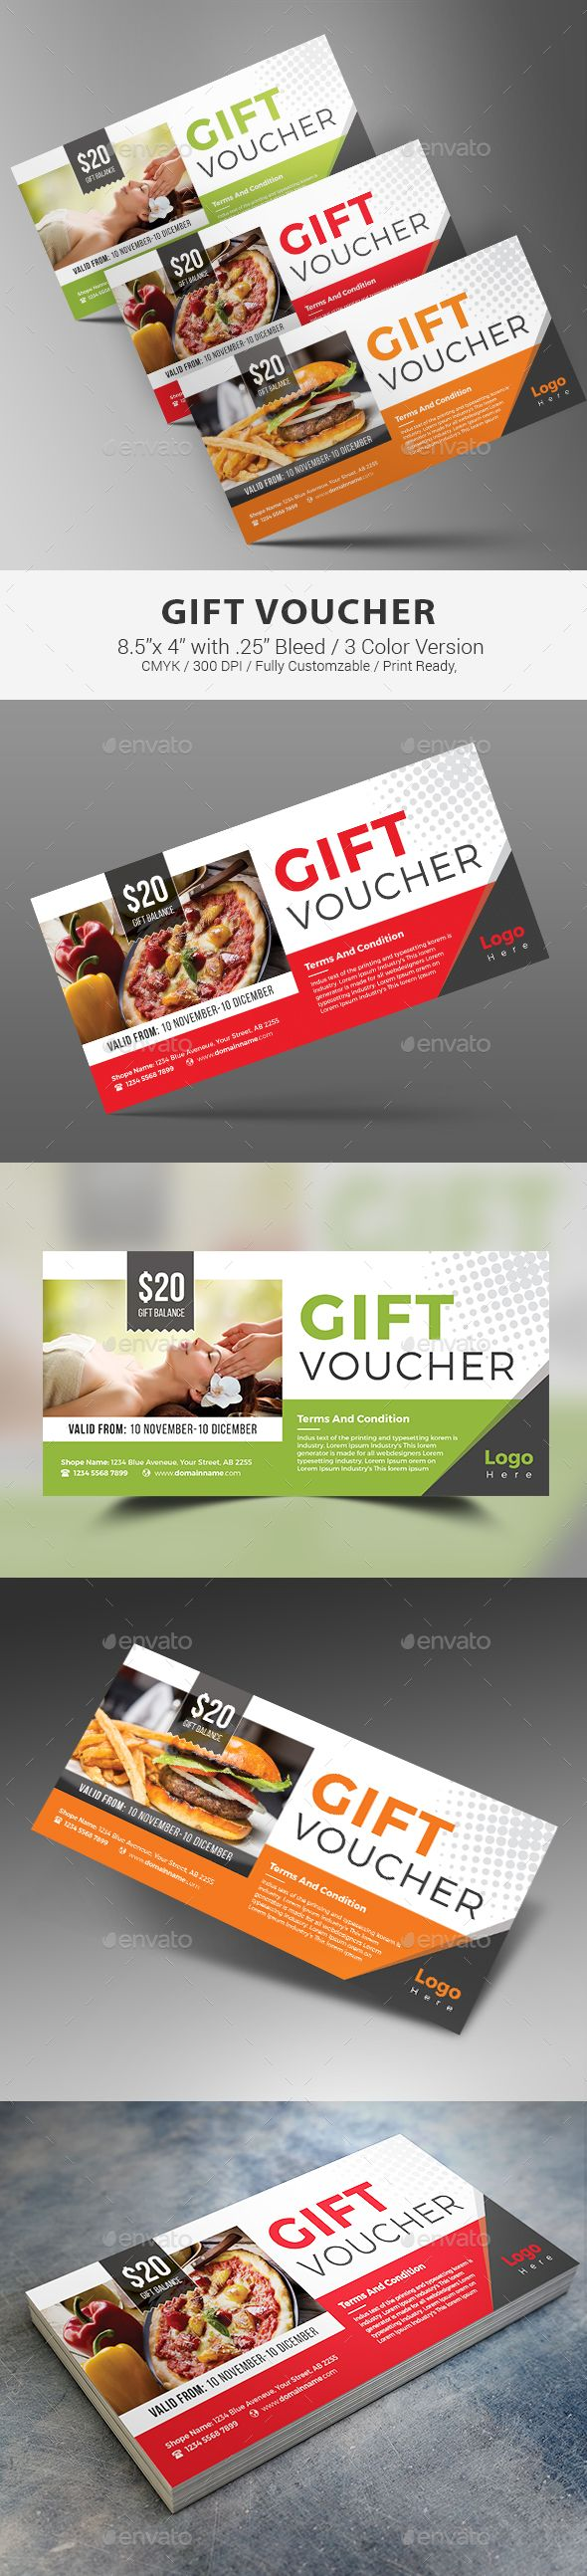 Gift Certificates Samples Glamorous 8 Best Gift Vouchers Templates Images On Pinterest  Gift Vouchers .